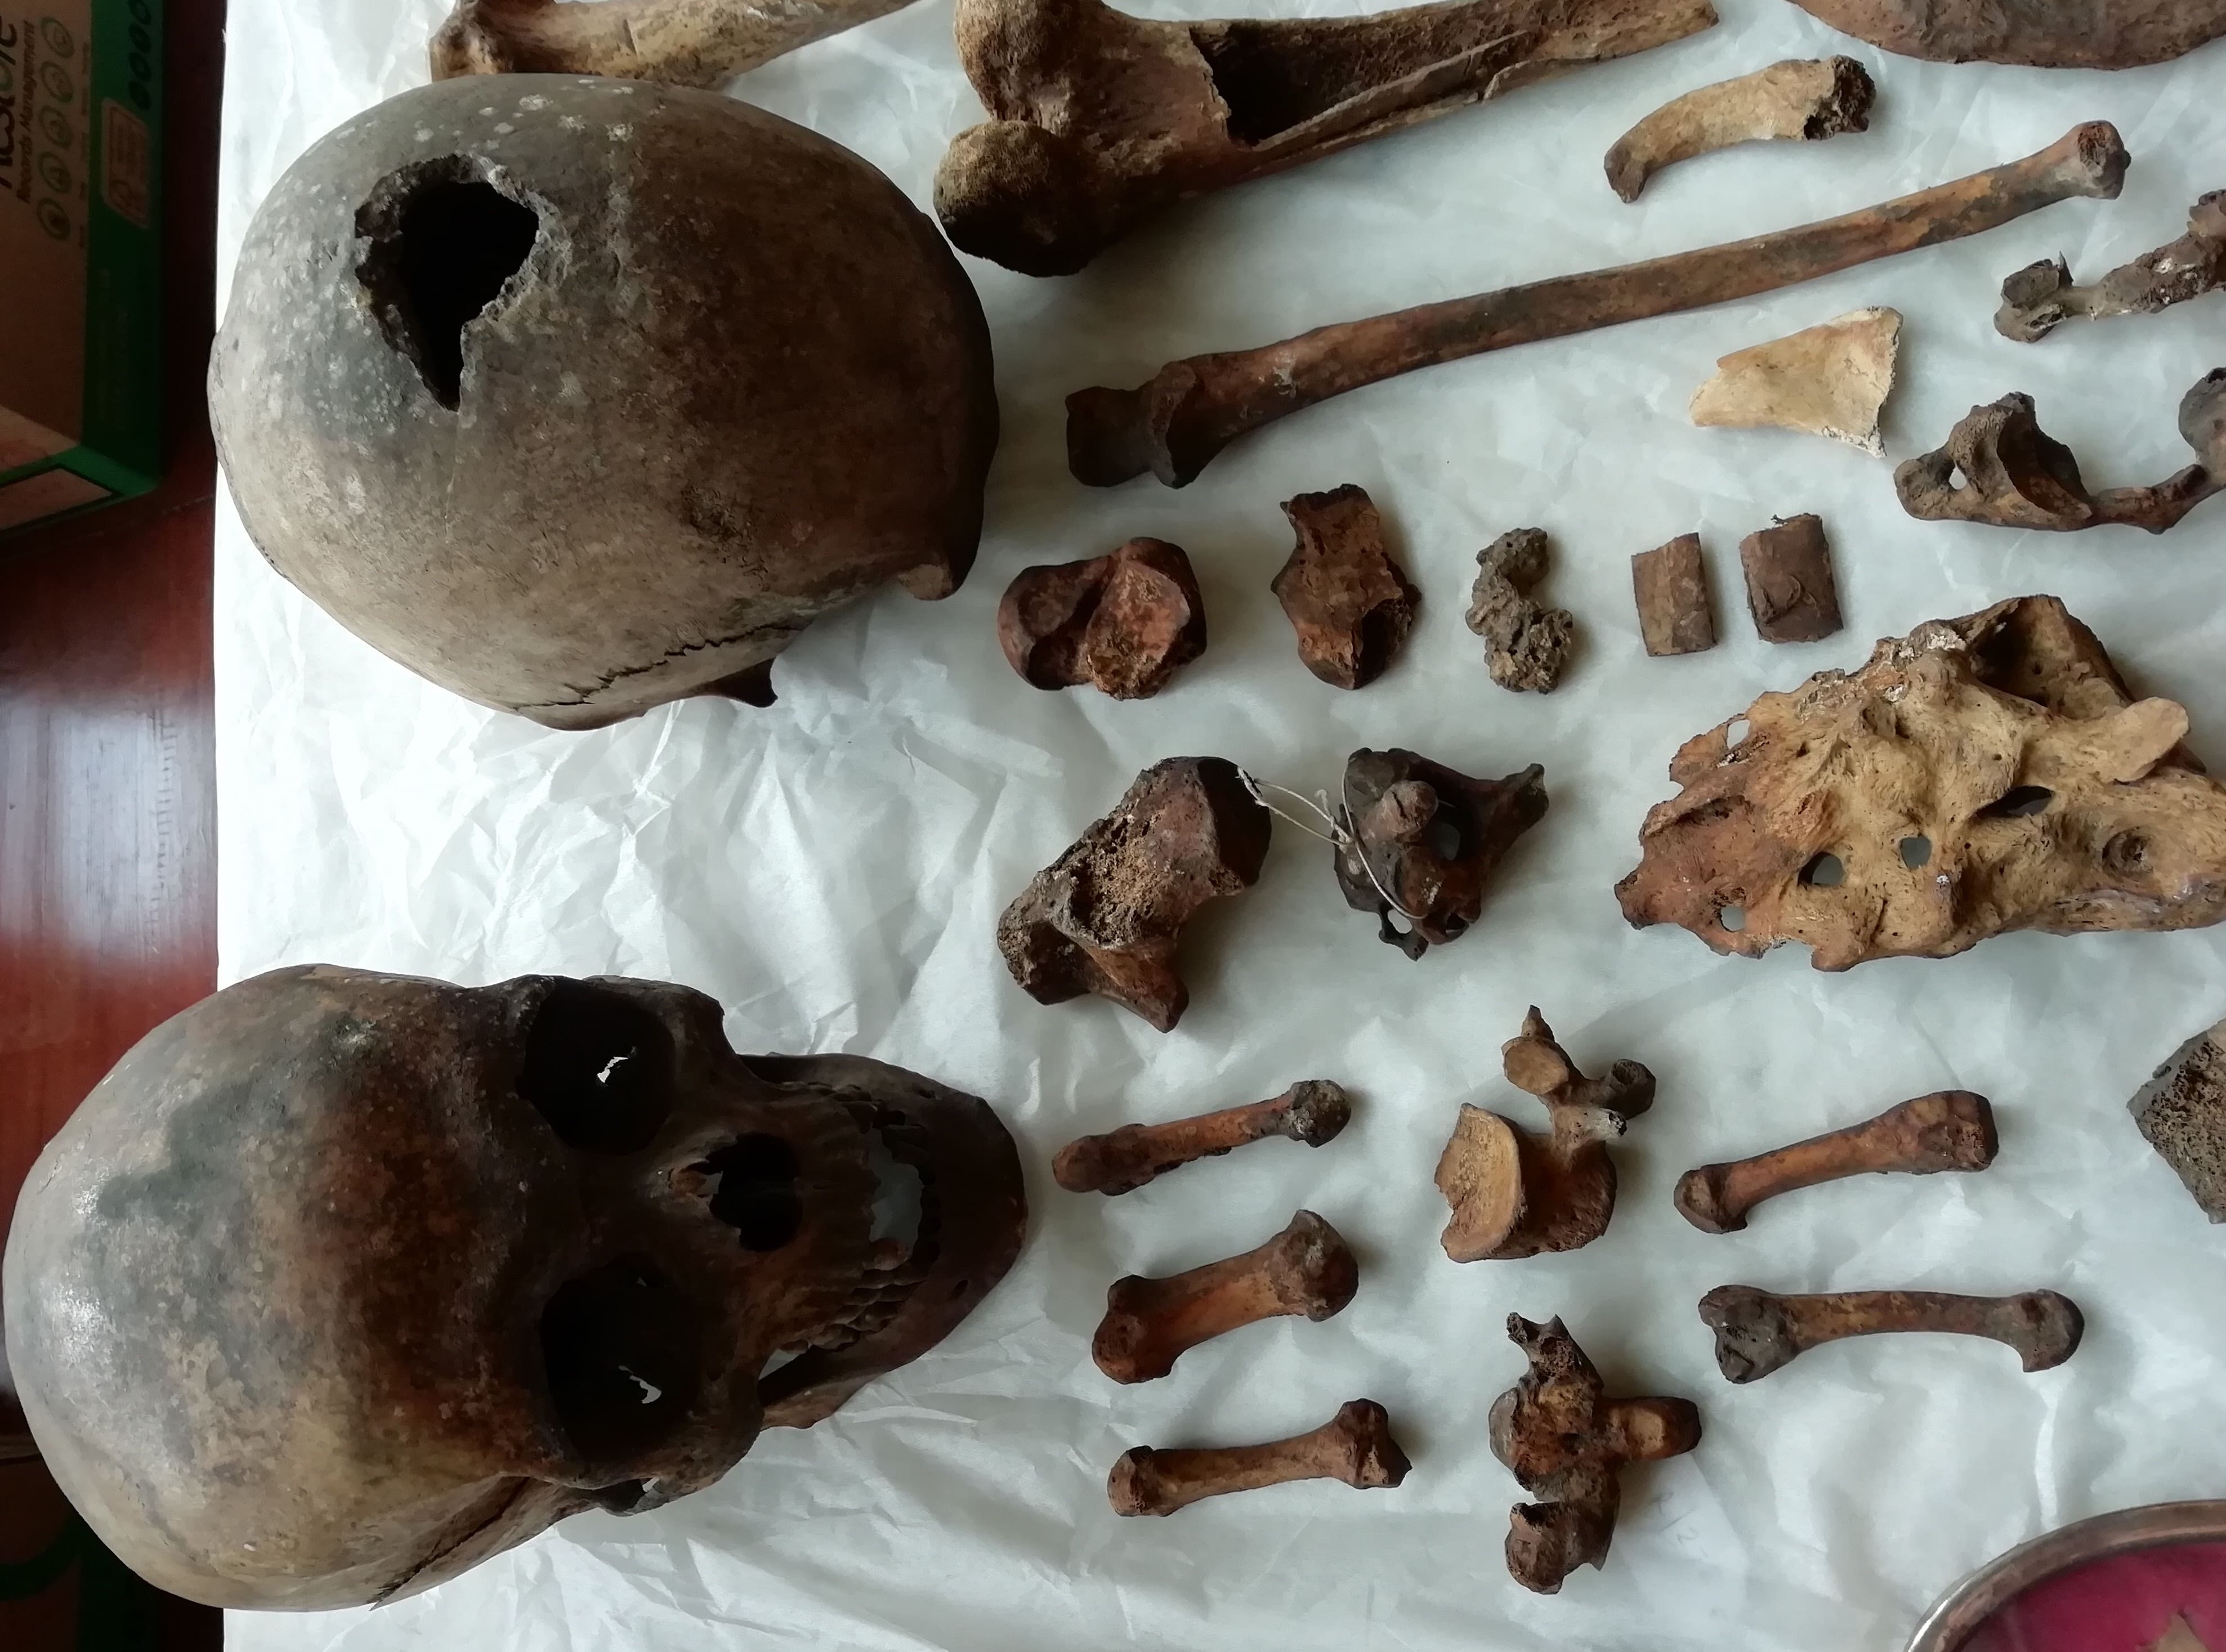 Two skulls and several pieces of bone laid out on a table